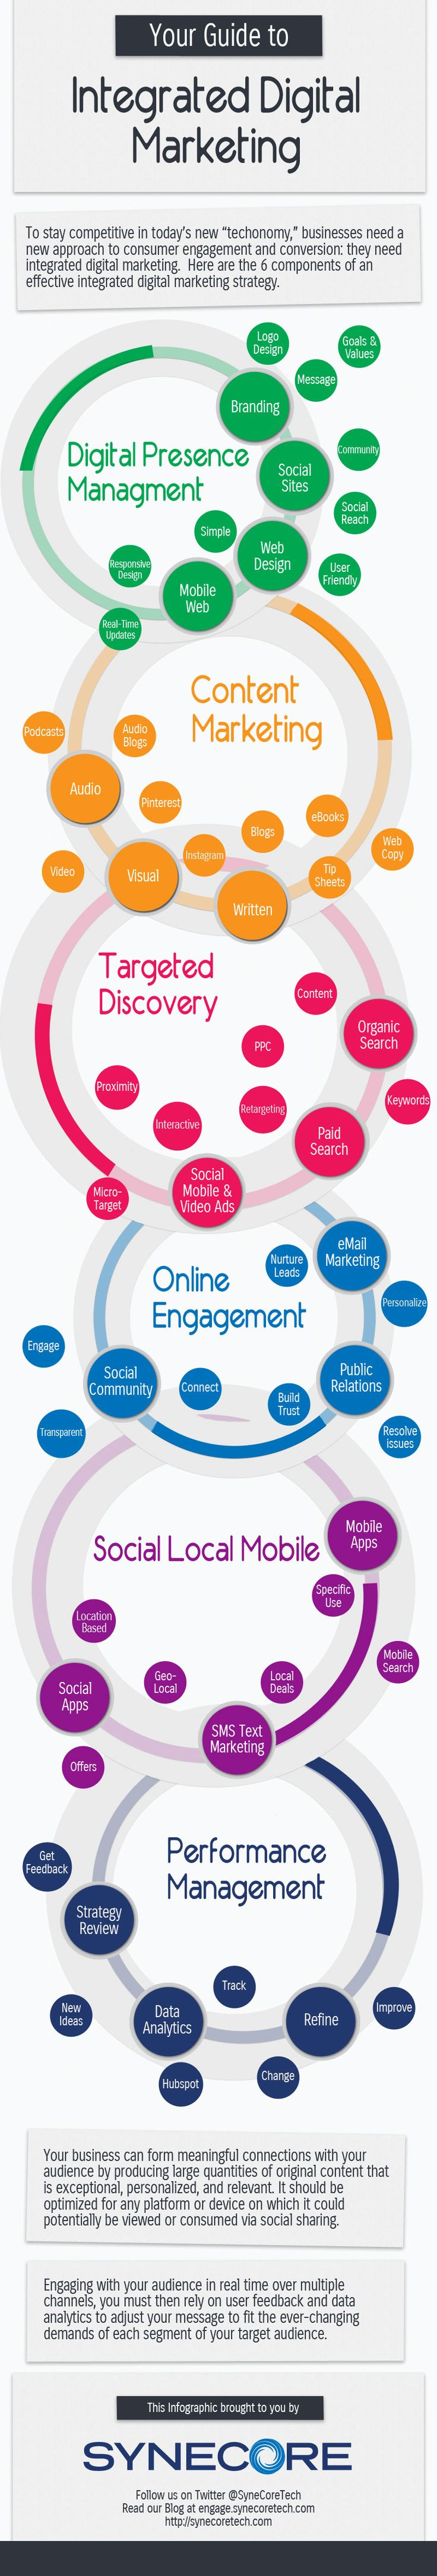 digital marketing strategy The golden age of hotel digital marketing presents a huge advantage for big brand hotels they have become their own publishers and agencies, creating hyper-targeted digital marketing campaigns.